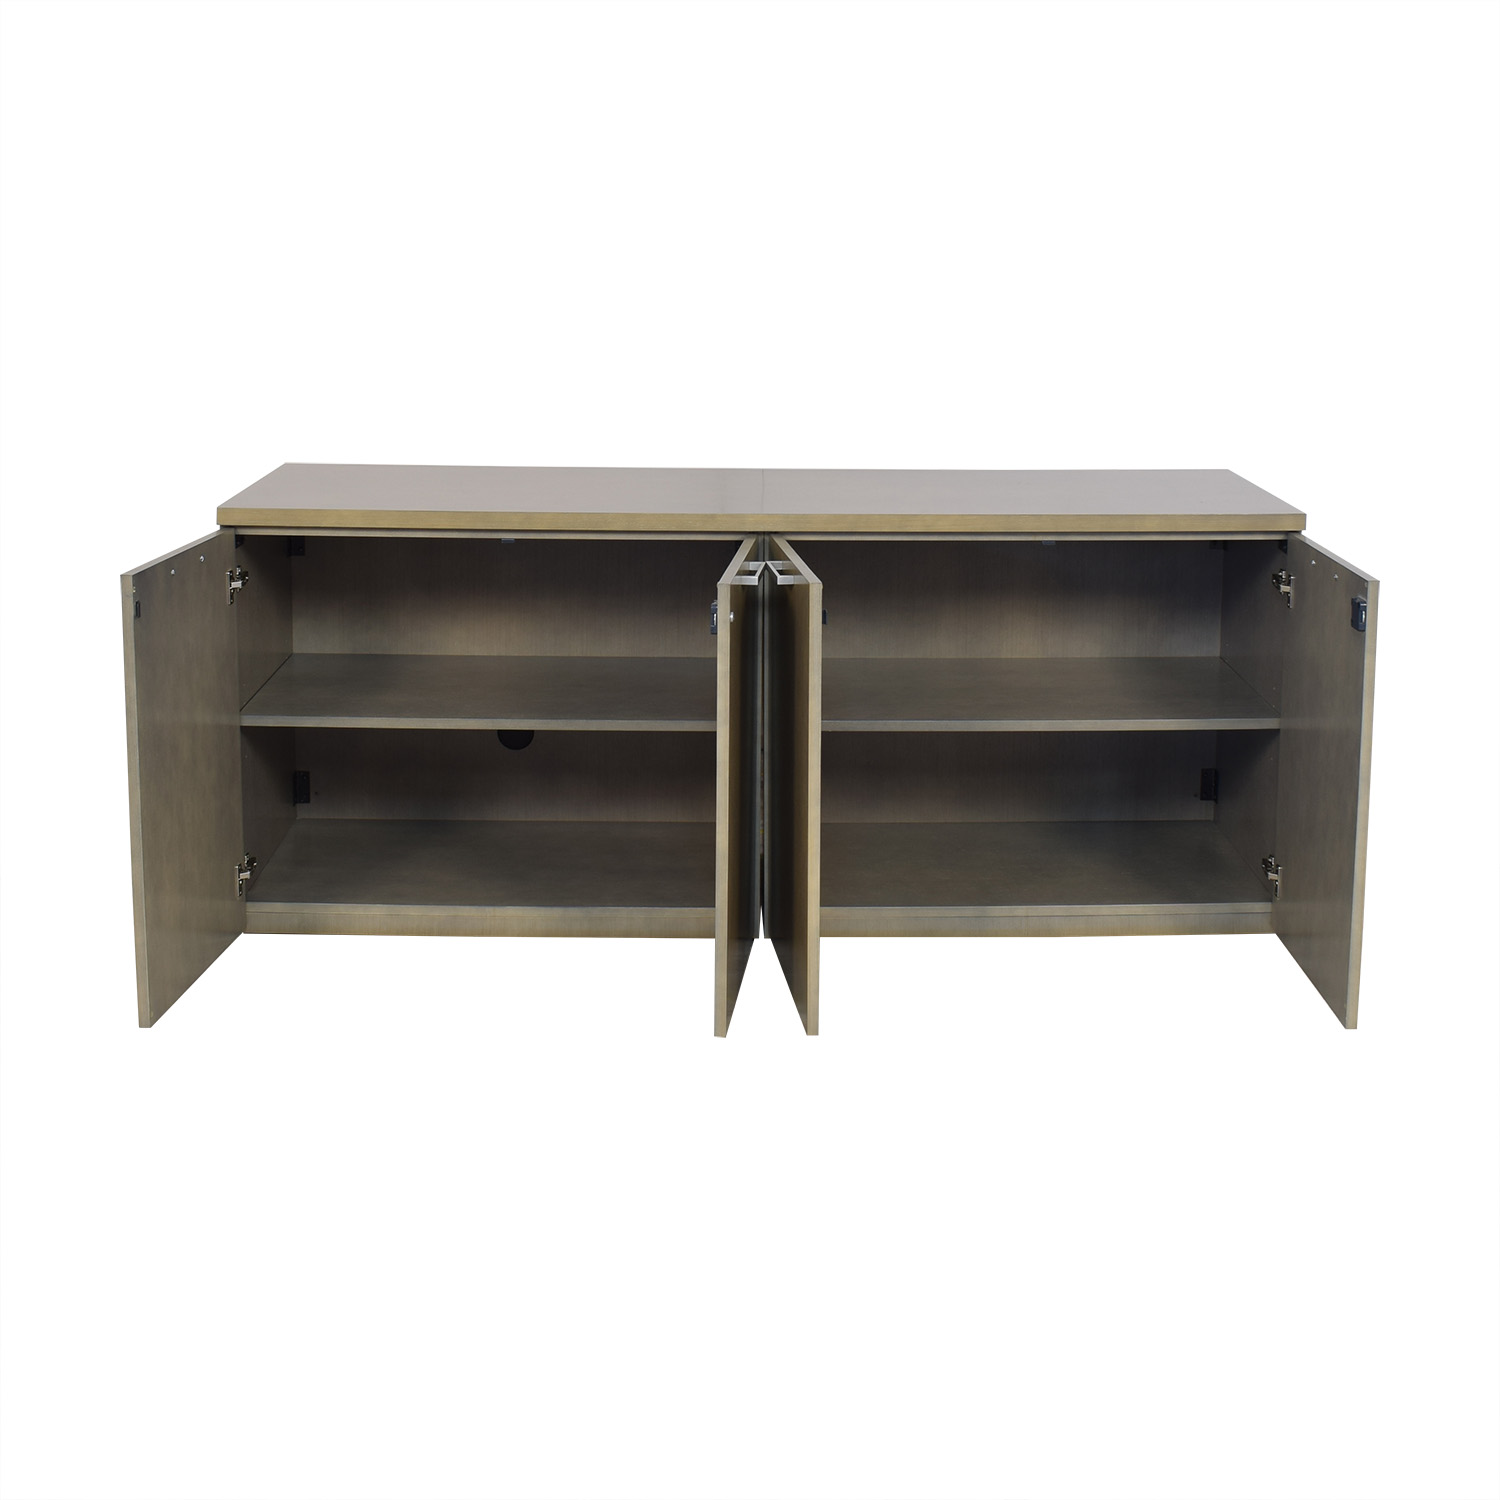 Modern Credenza with Cabinets second hand